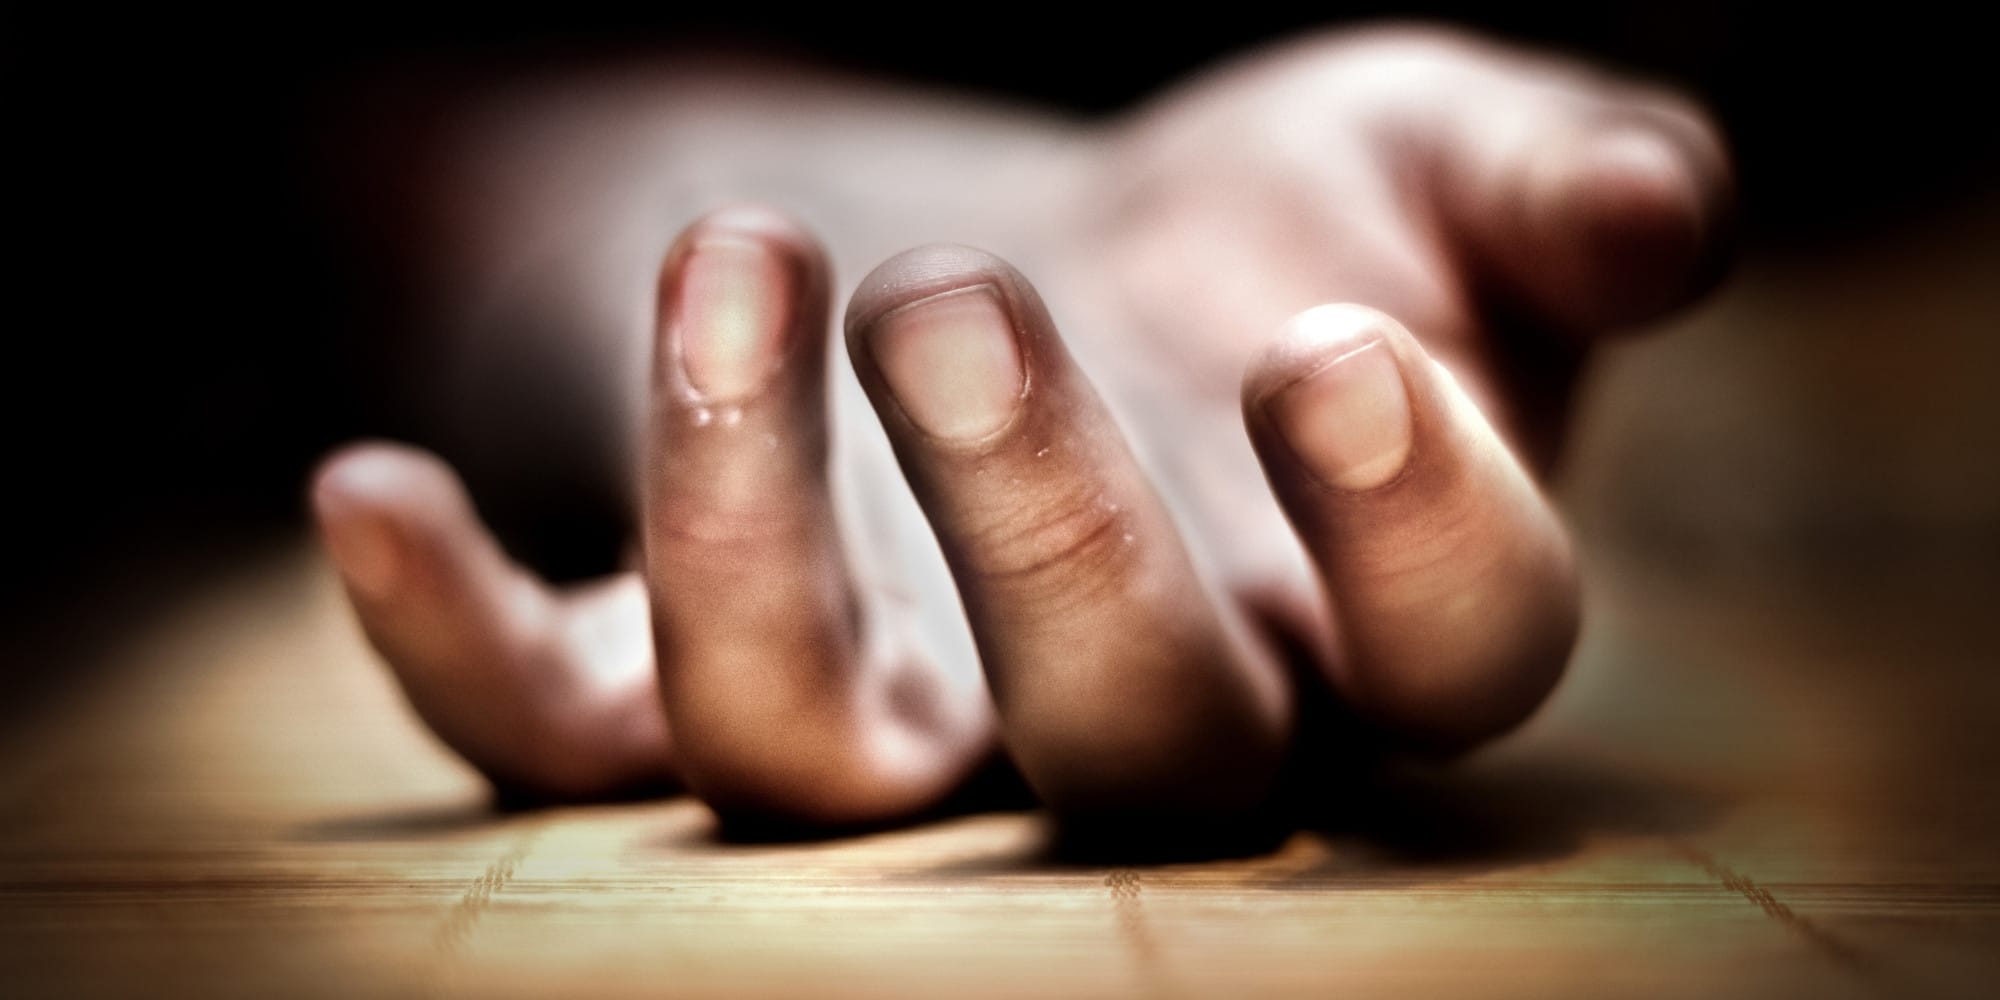 Man kills two sons, attempts suicide after fight with wife